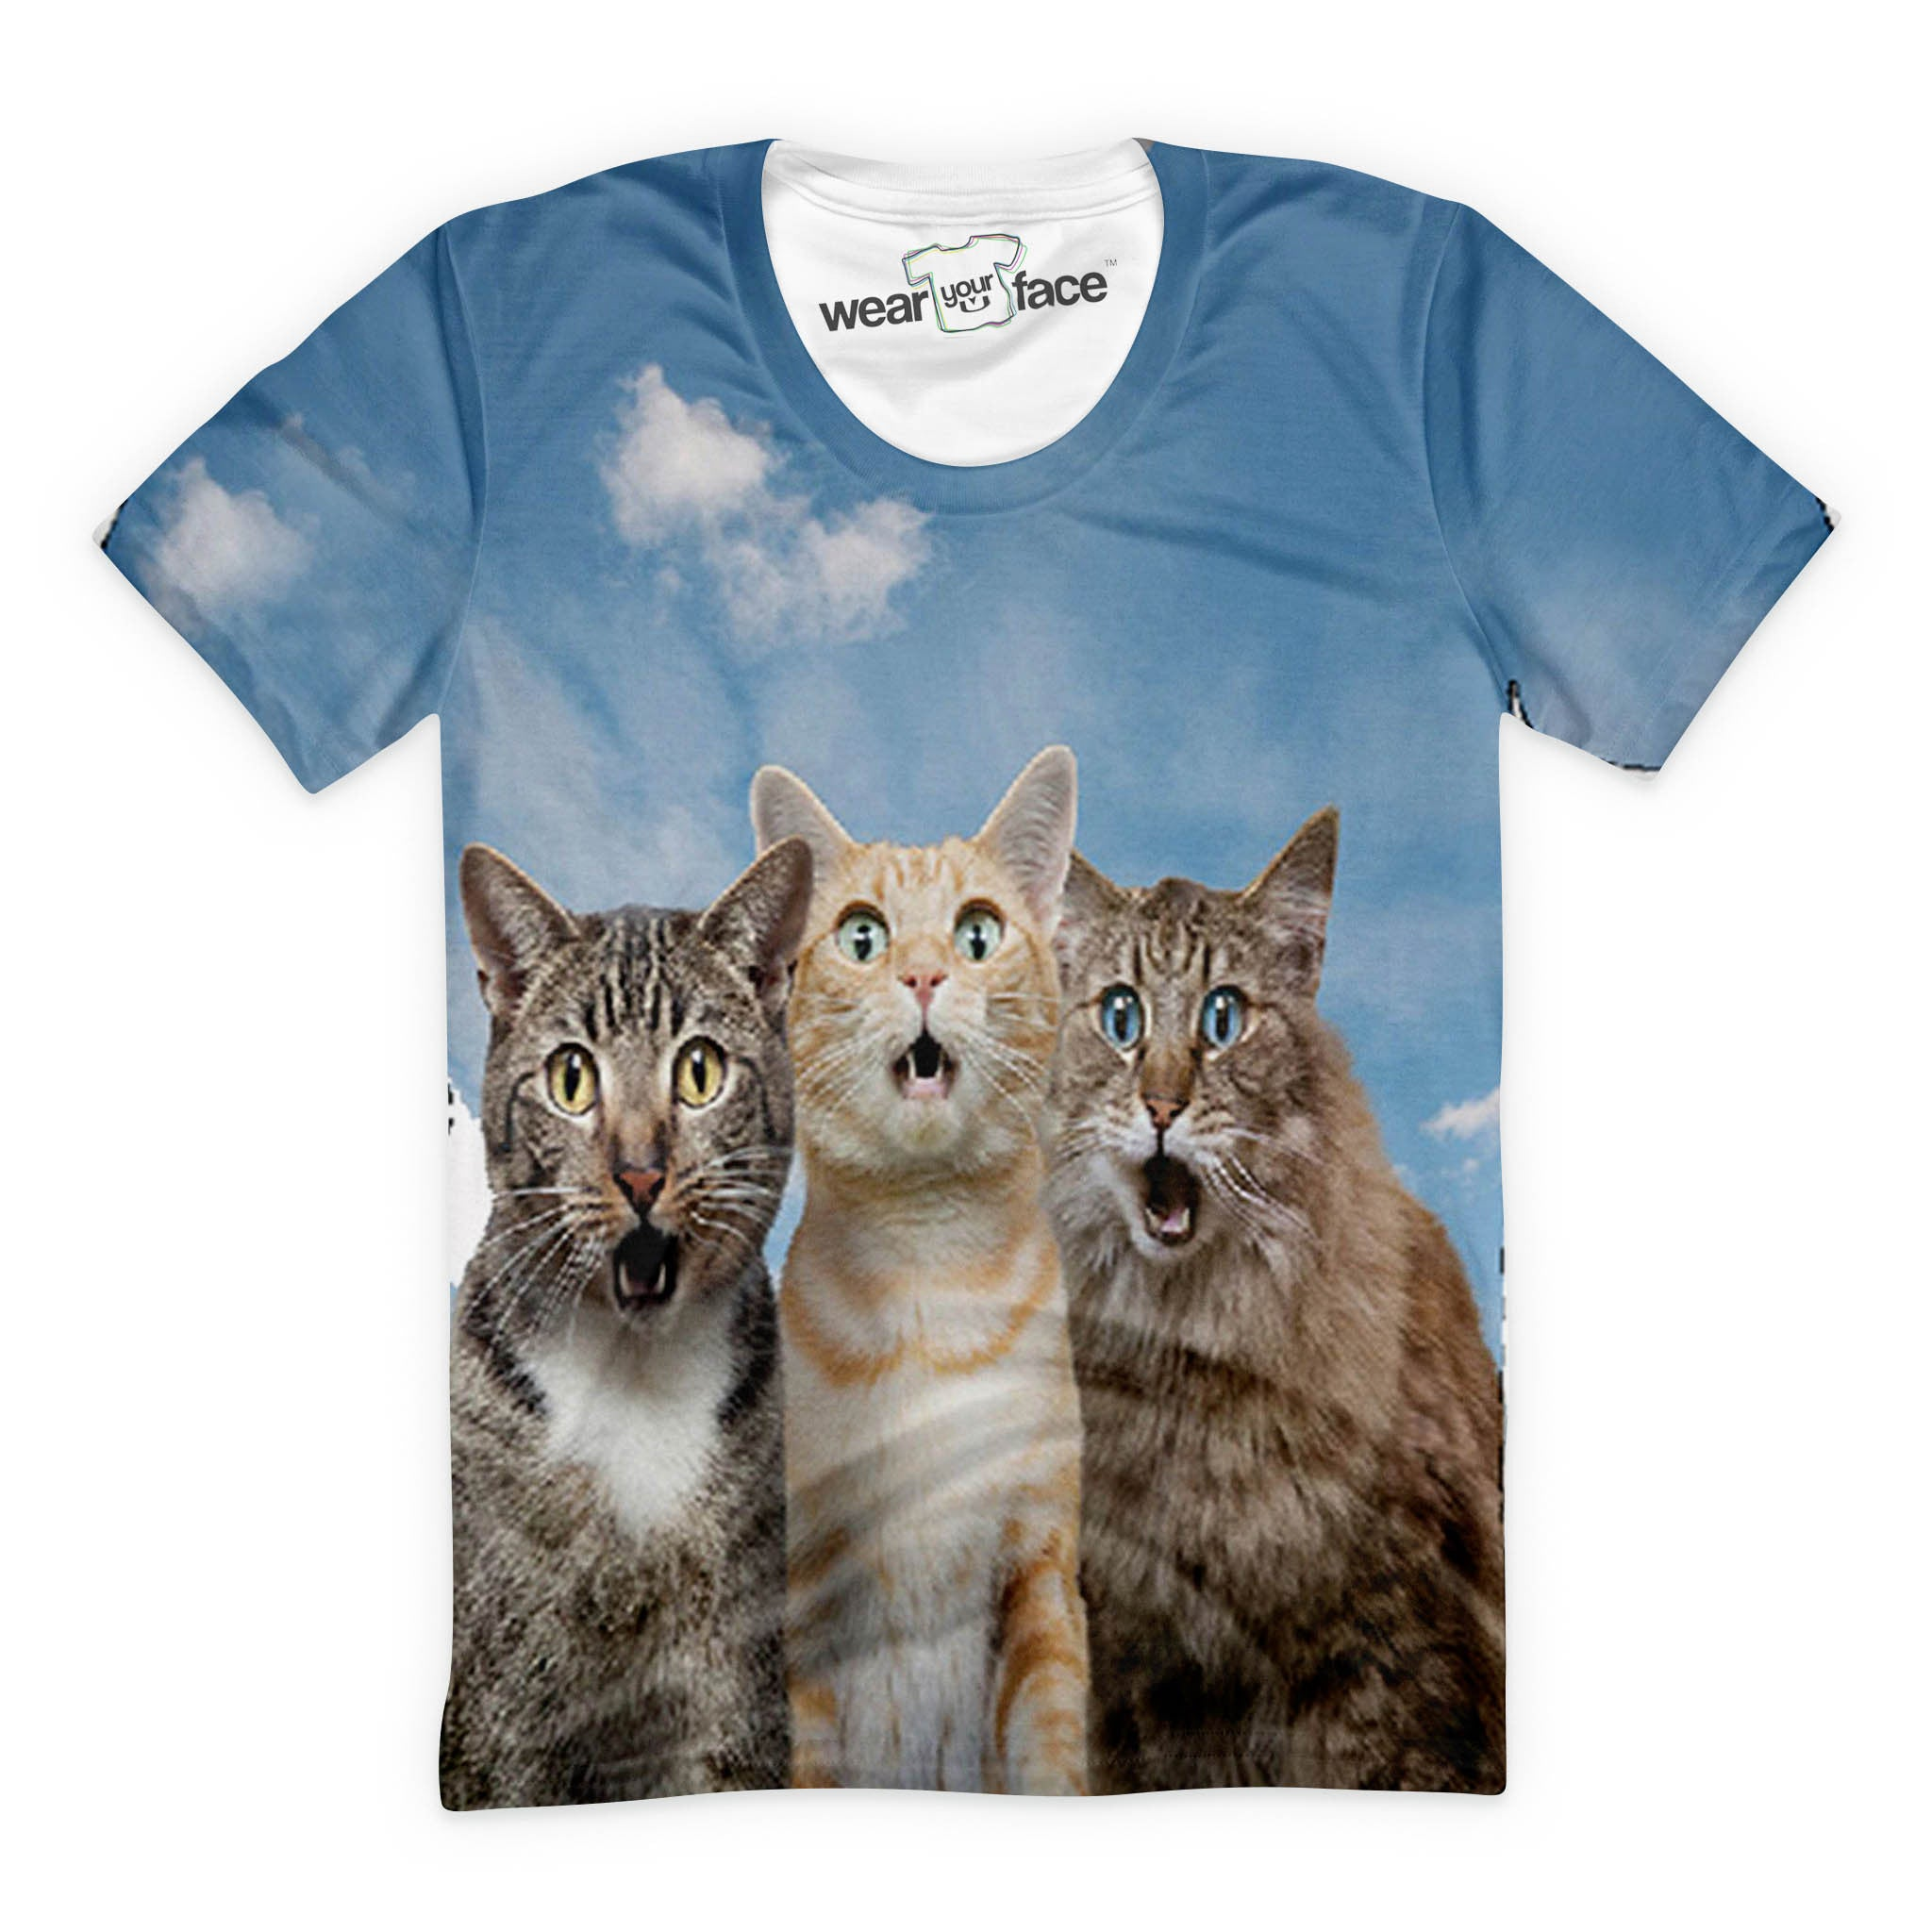 The Three Old Cats T-Shirt